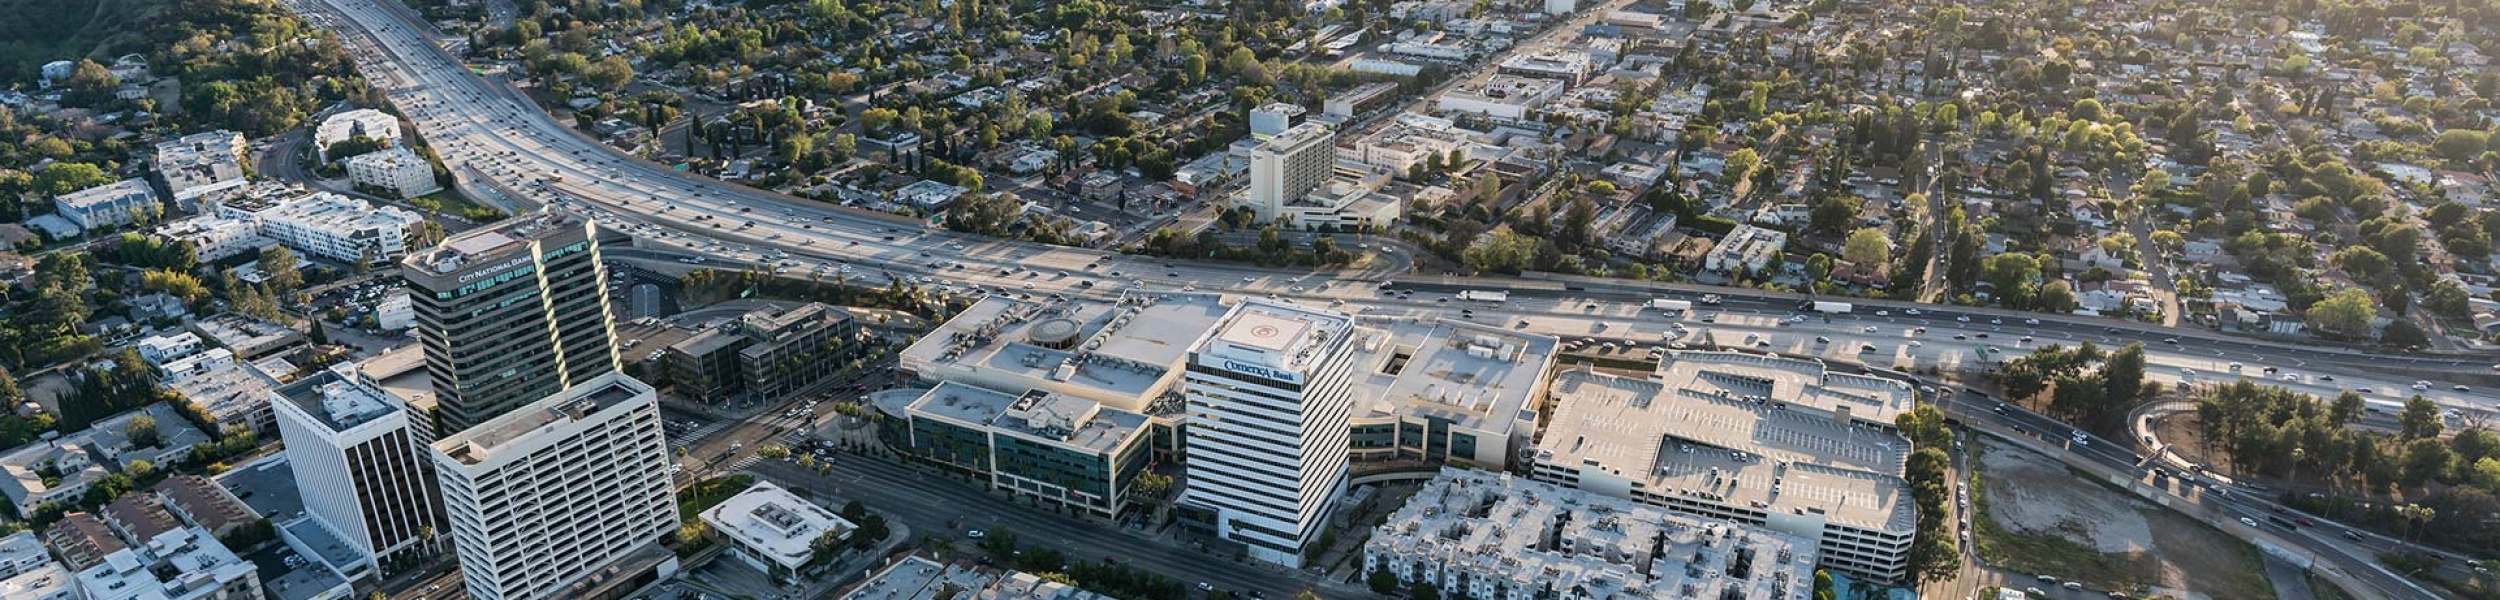 paley-commercial-real-estate-san-fernando-valley-woodland-hills-1920x1310